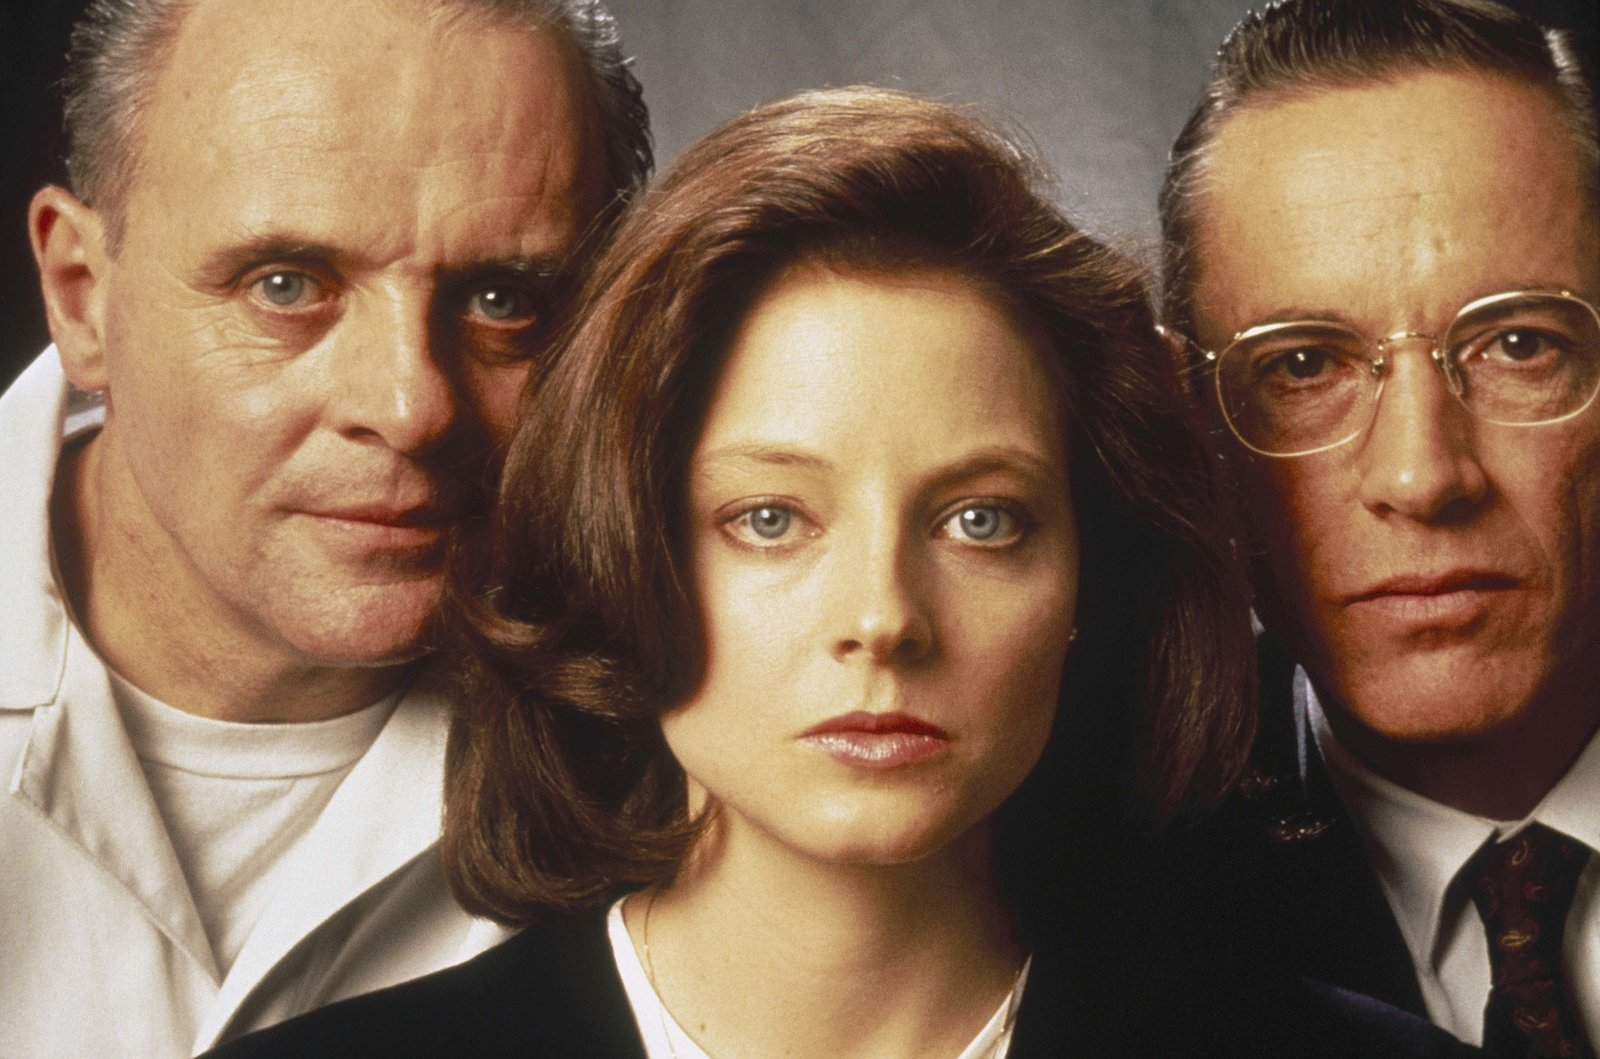 Anthony Hopkins as Dr. Hanibal Lecter, Jodie Foster as Clarice Starling and Lawrence A. Bonney as FBI Instructor – Bild: Servus TV